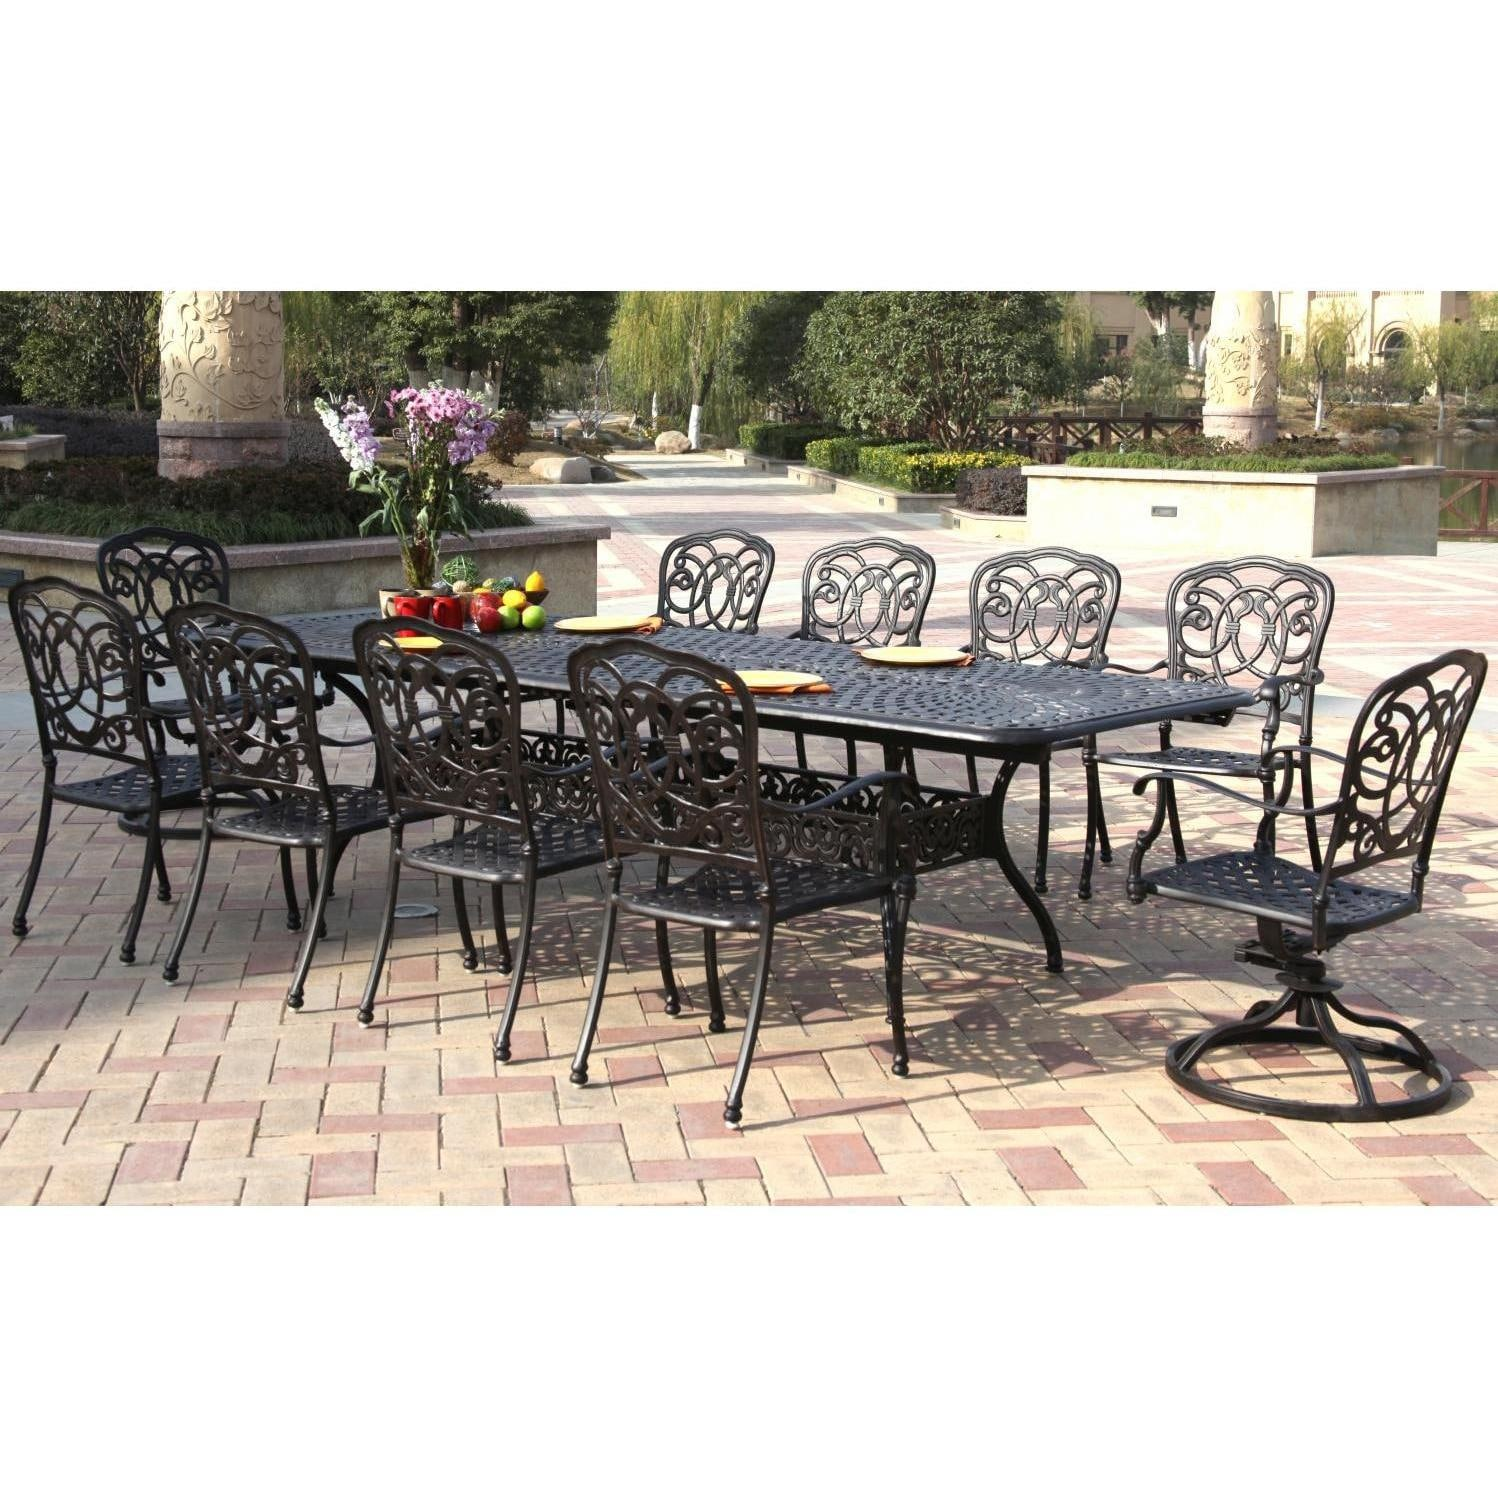 Darlee florence 11 piece cast aluminum patio dining set for 11 piece dining table set